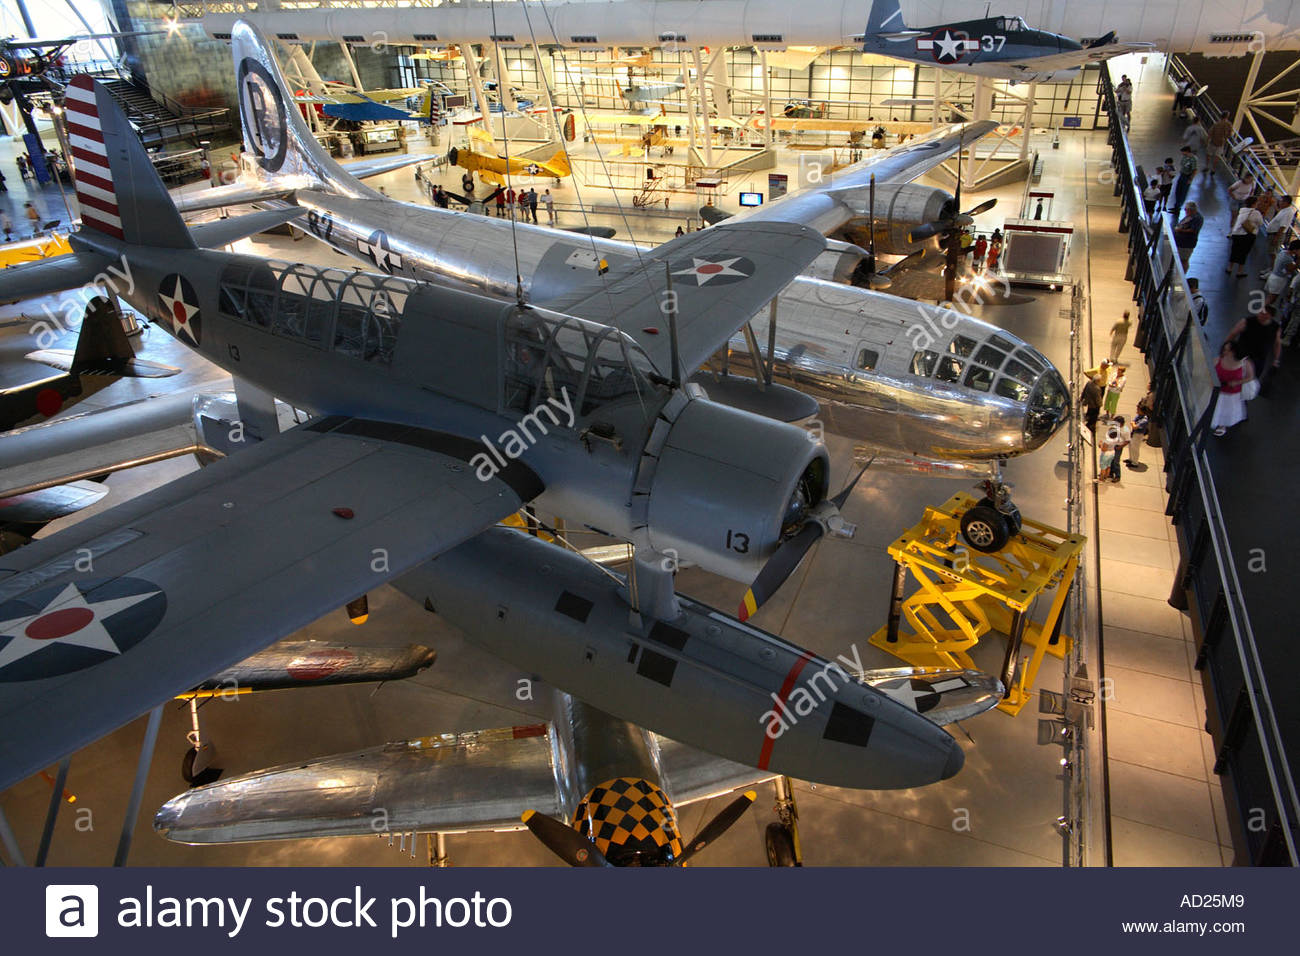 Japanese WWII seaplane and US Enola Gay B-29 on display at the Steven Udvar-Hazy Center. Stock Photo